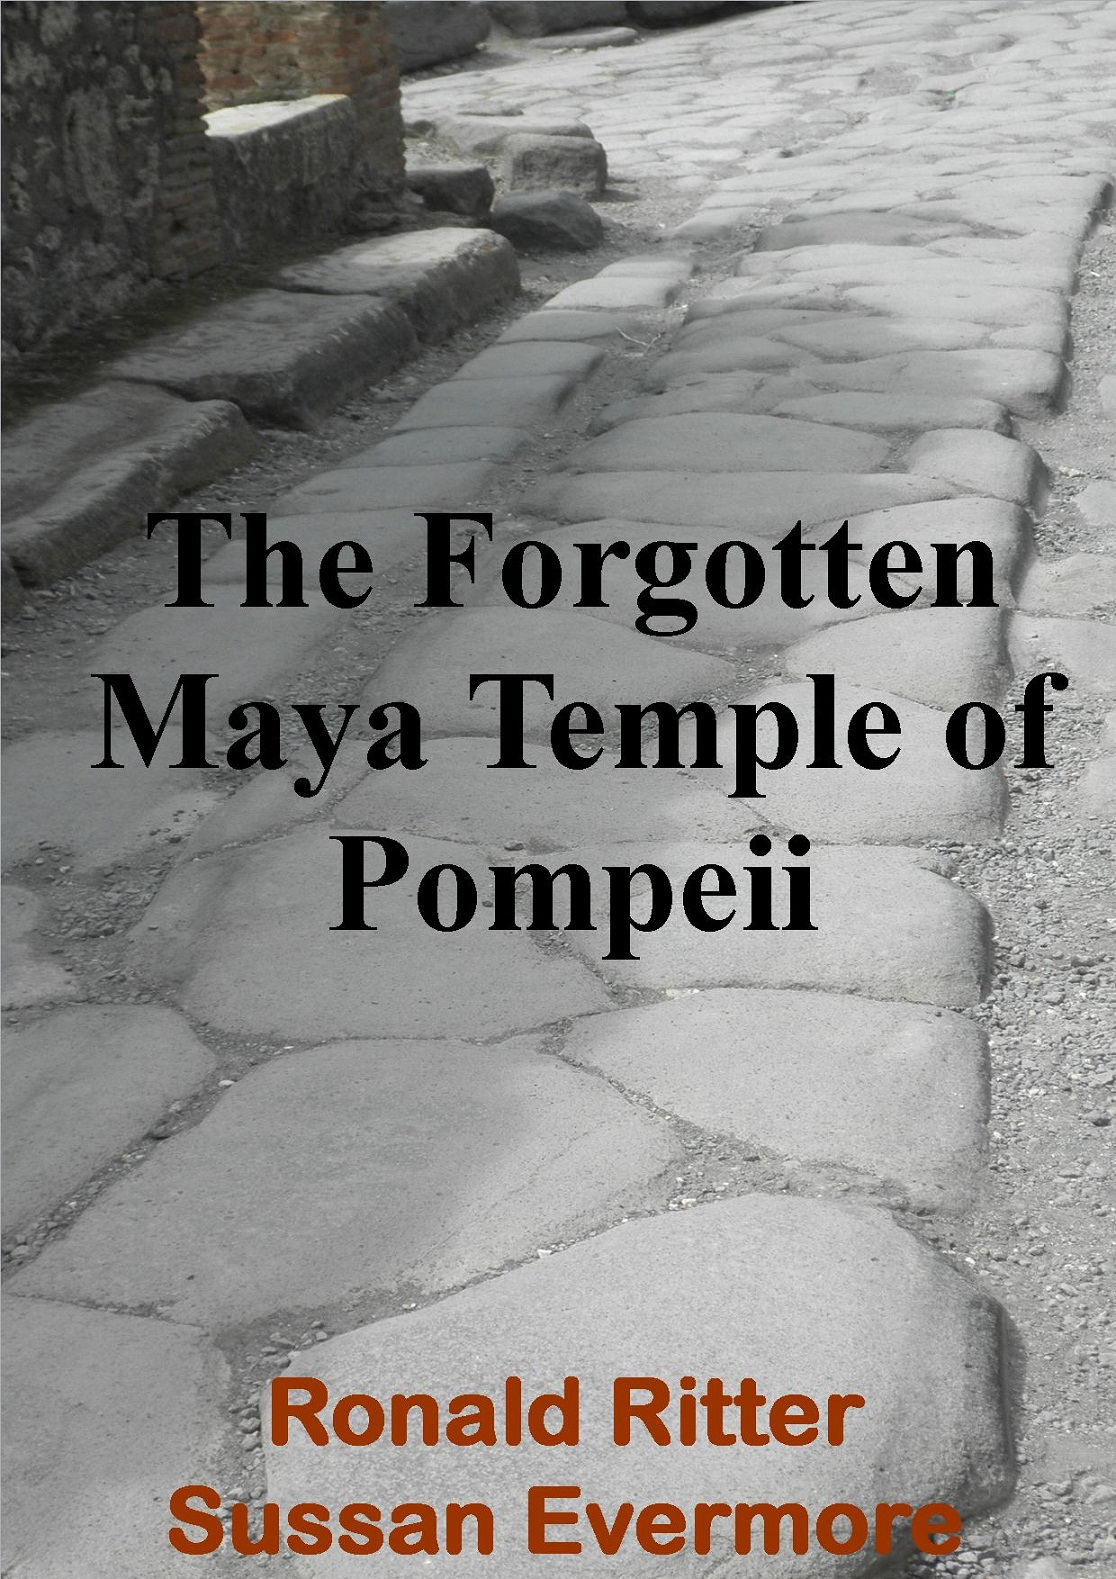 The Forgotten Maya Temple Of Pompeii By: Ronald Ritter,Sussan Evermore